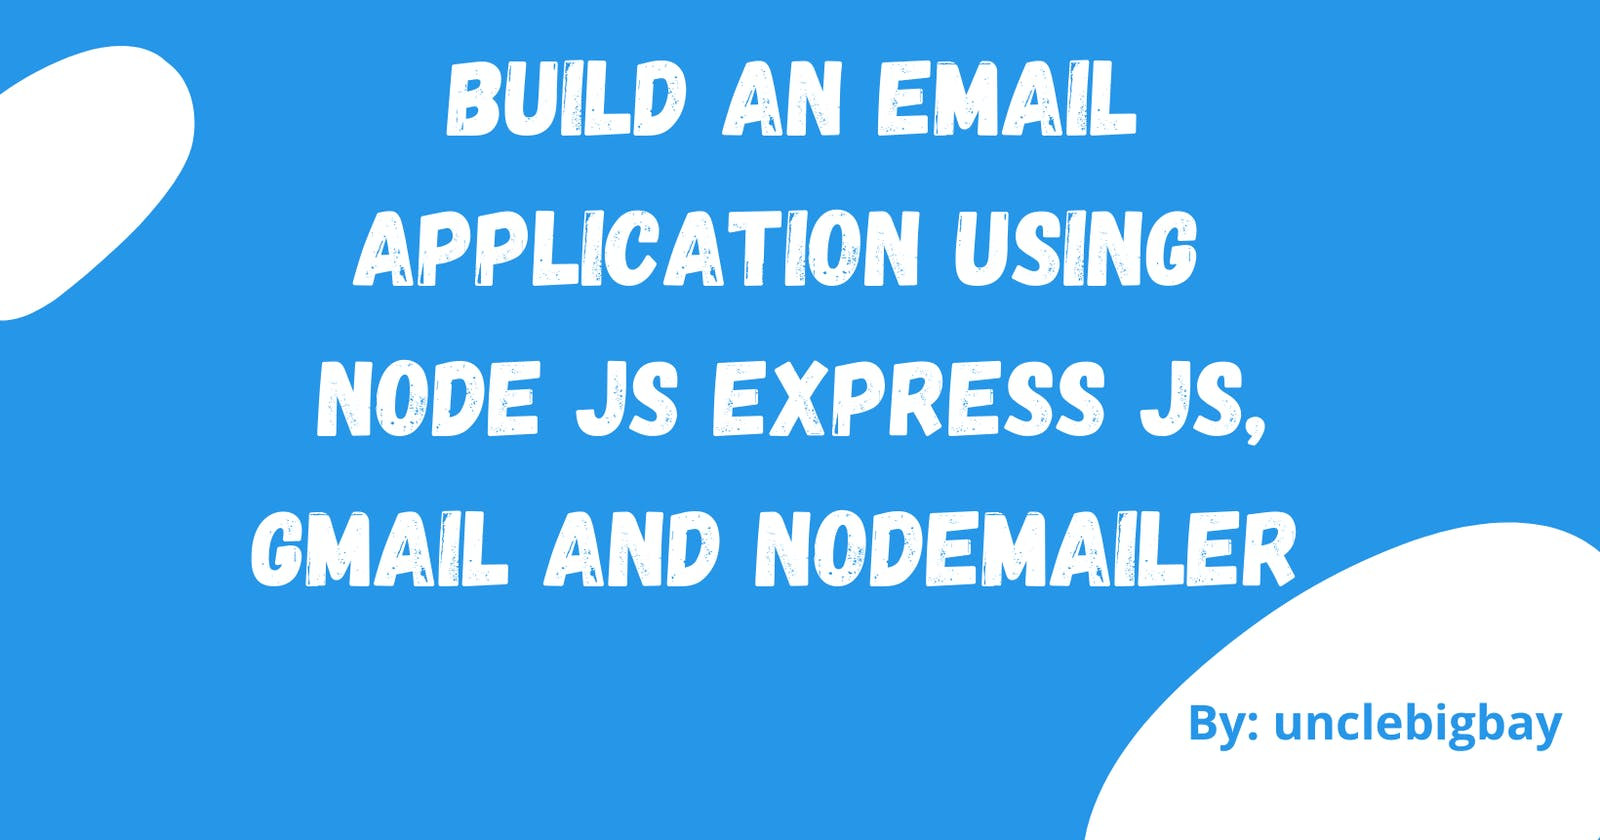 Build an Email Application using Node JS Express JS with Gmail and Nodemailer - (All in one Article)